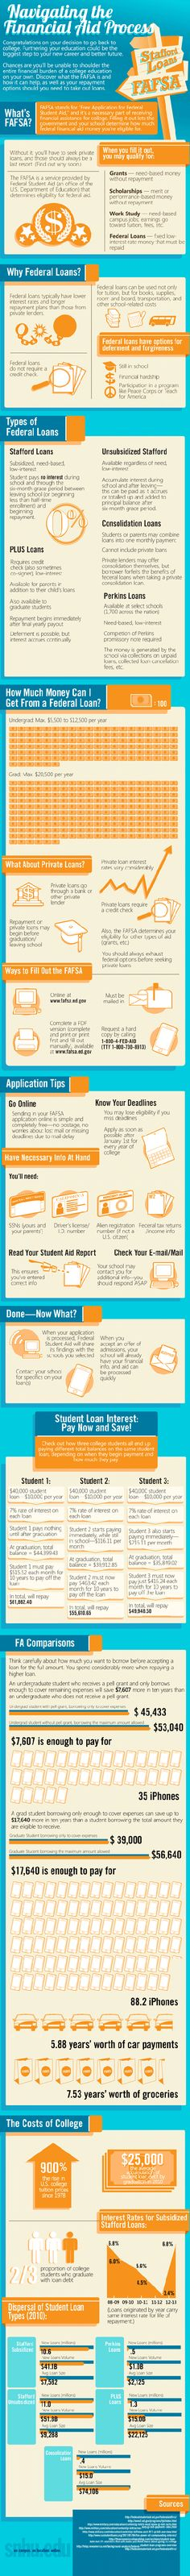 Navigating the Financial Aid Process for college